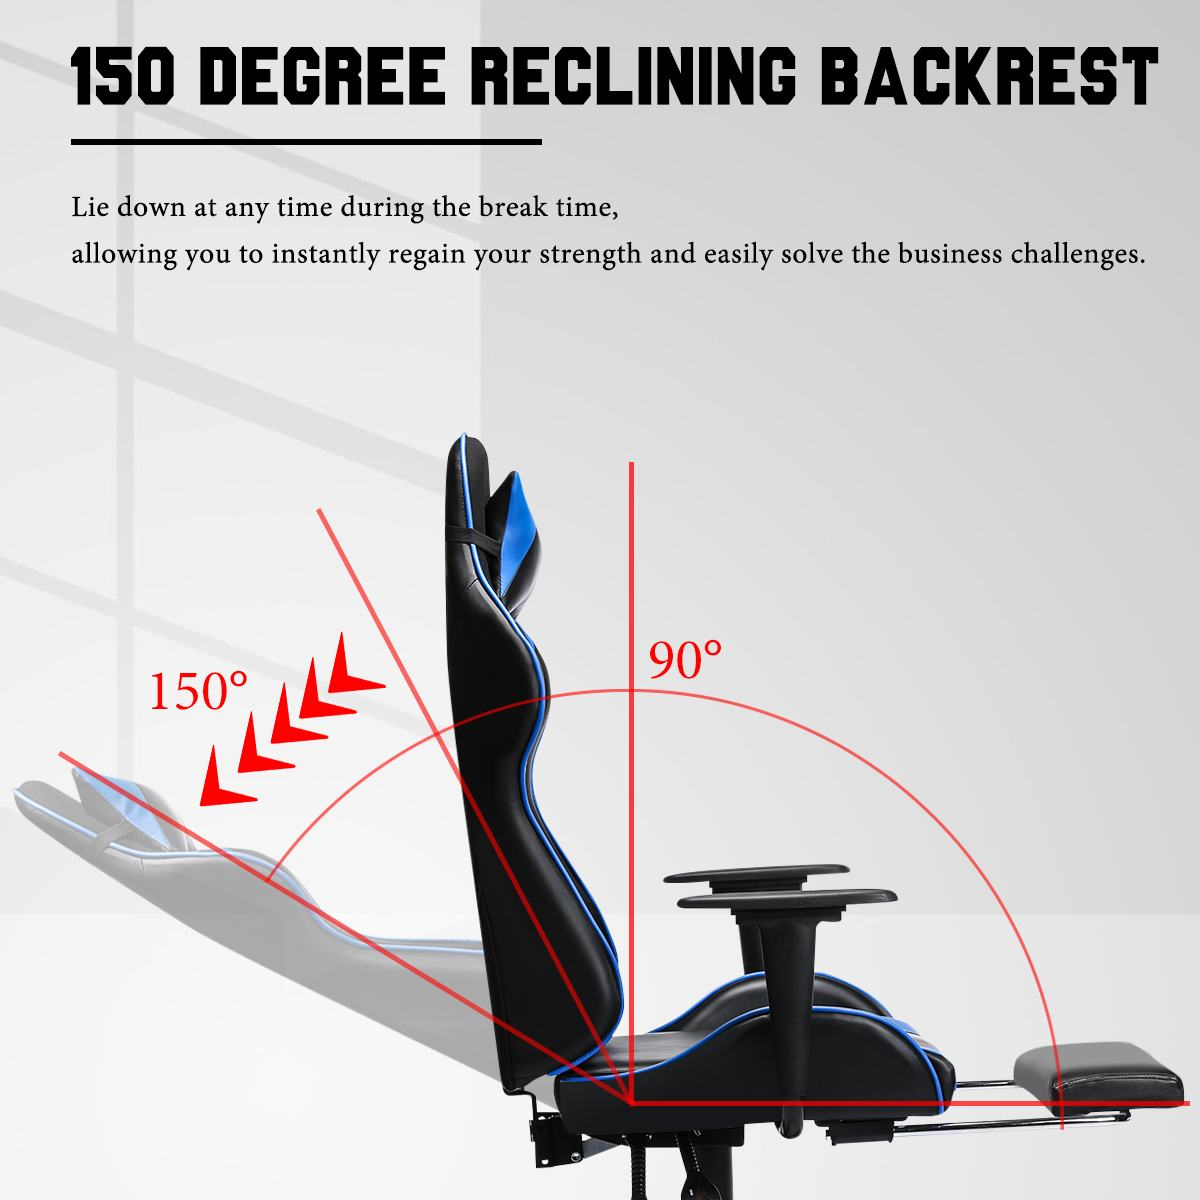 Hefcd723a4cd4452bba044f32a42fa990x - 155° Gaming Chairs with Footrest Ergonomic Office Chair Adjustable Swivel Leather High Back Computer Desk Chair with Headrest